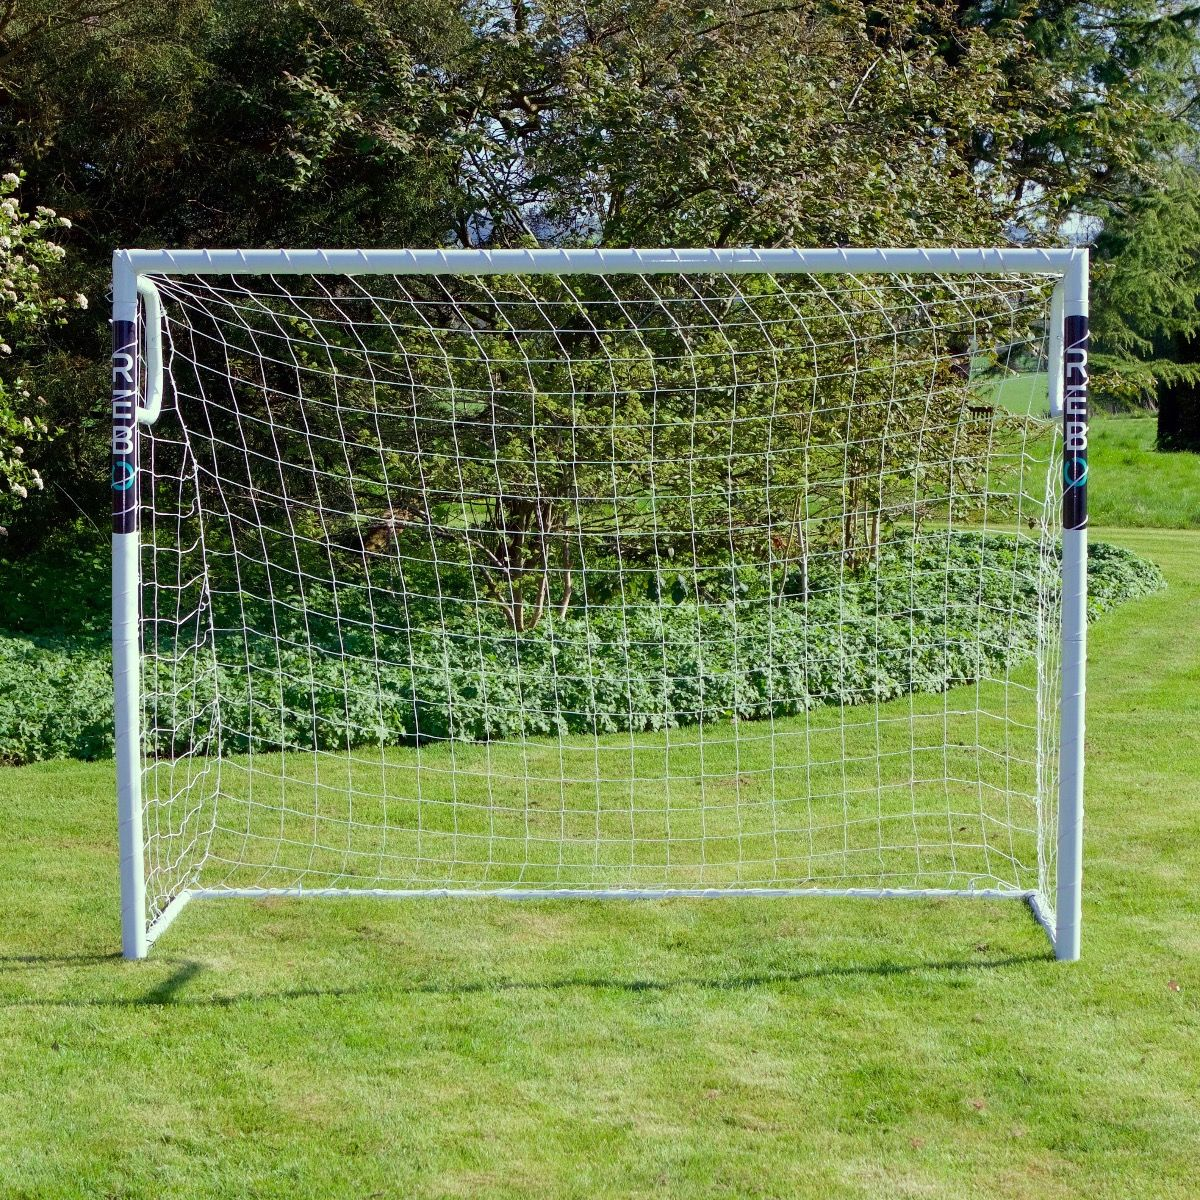 f91c65c6 Rebo Steel Pro Football Goal Post with Locking System - 8 x 6FT Goal